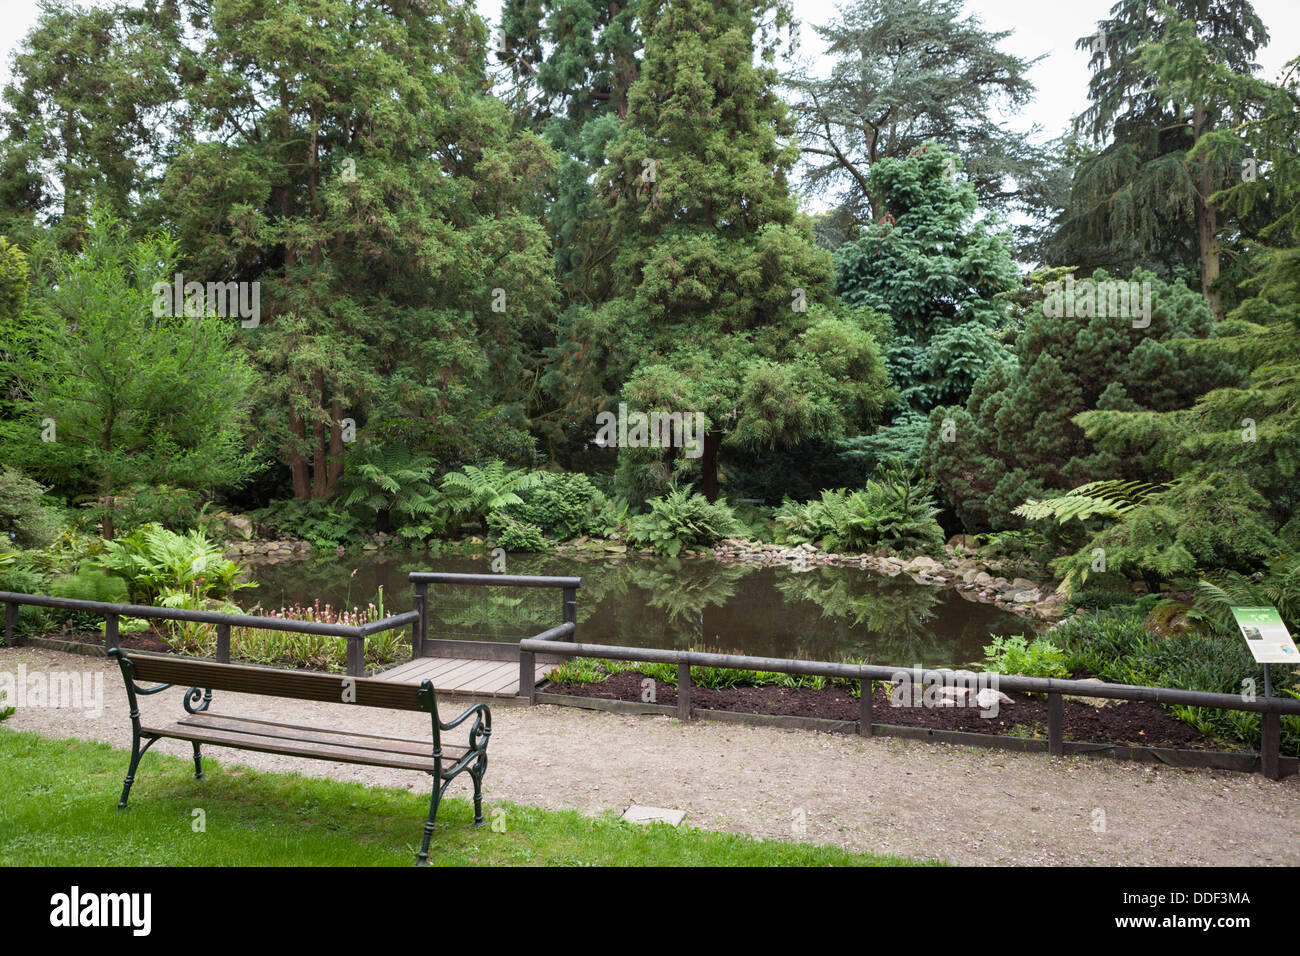 Mesozoic garden and pond at the Pinetum in Hilversum in the Netherlands - Stock Image